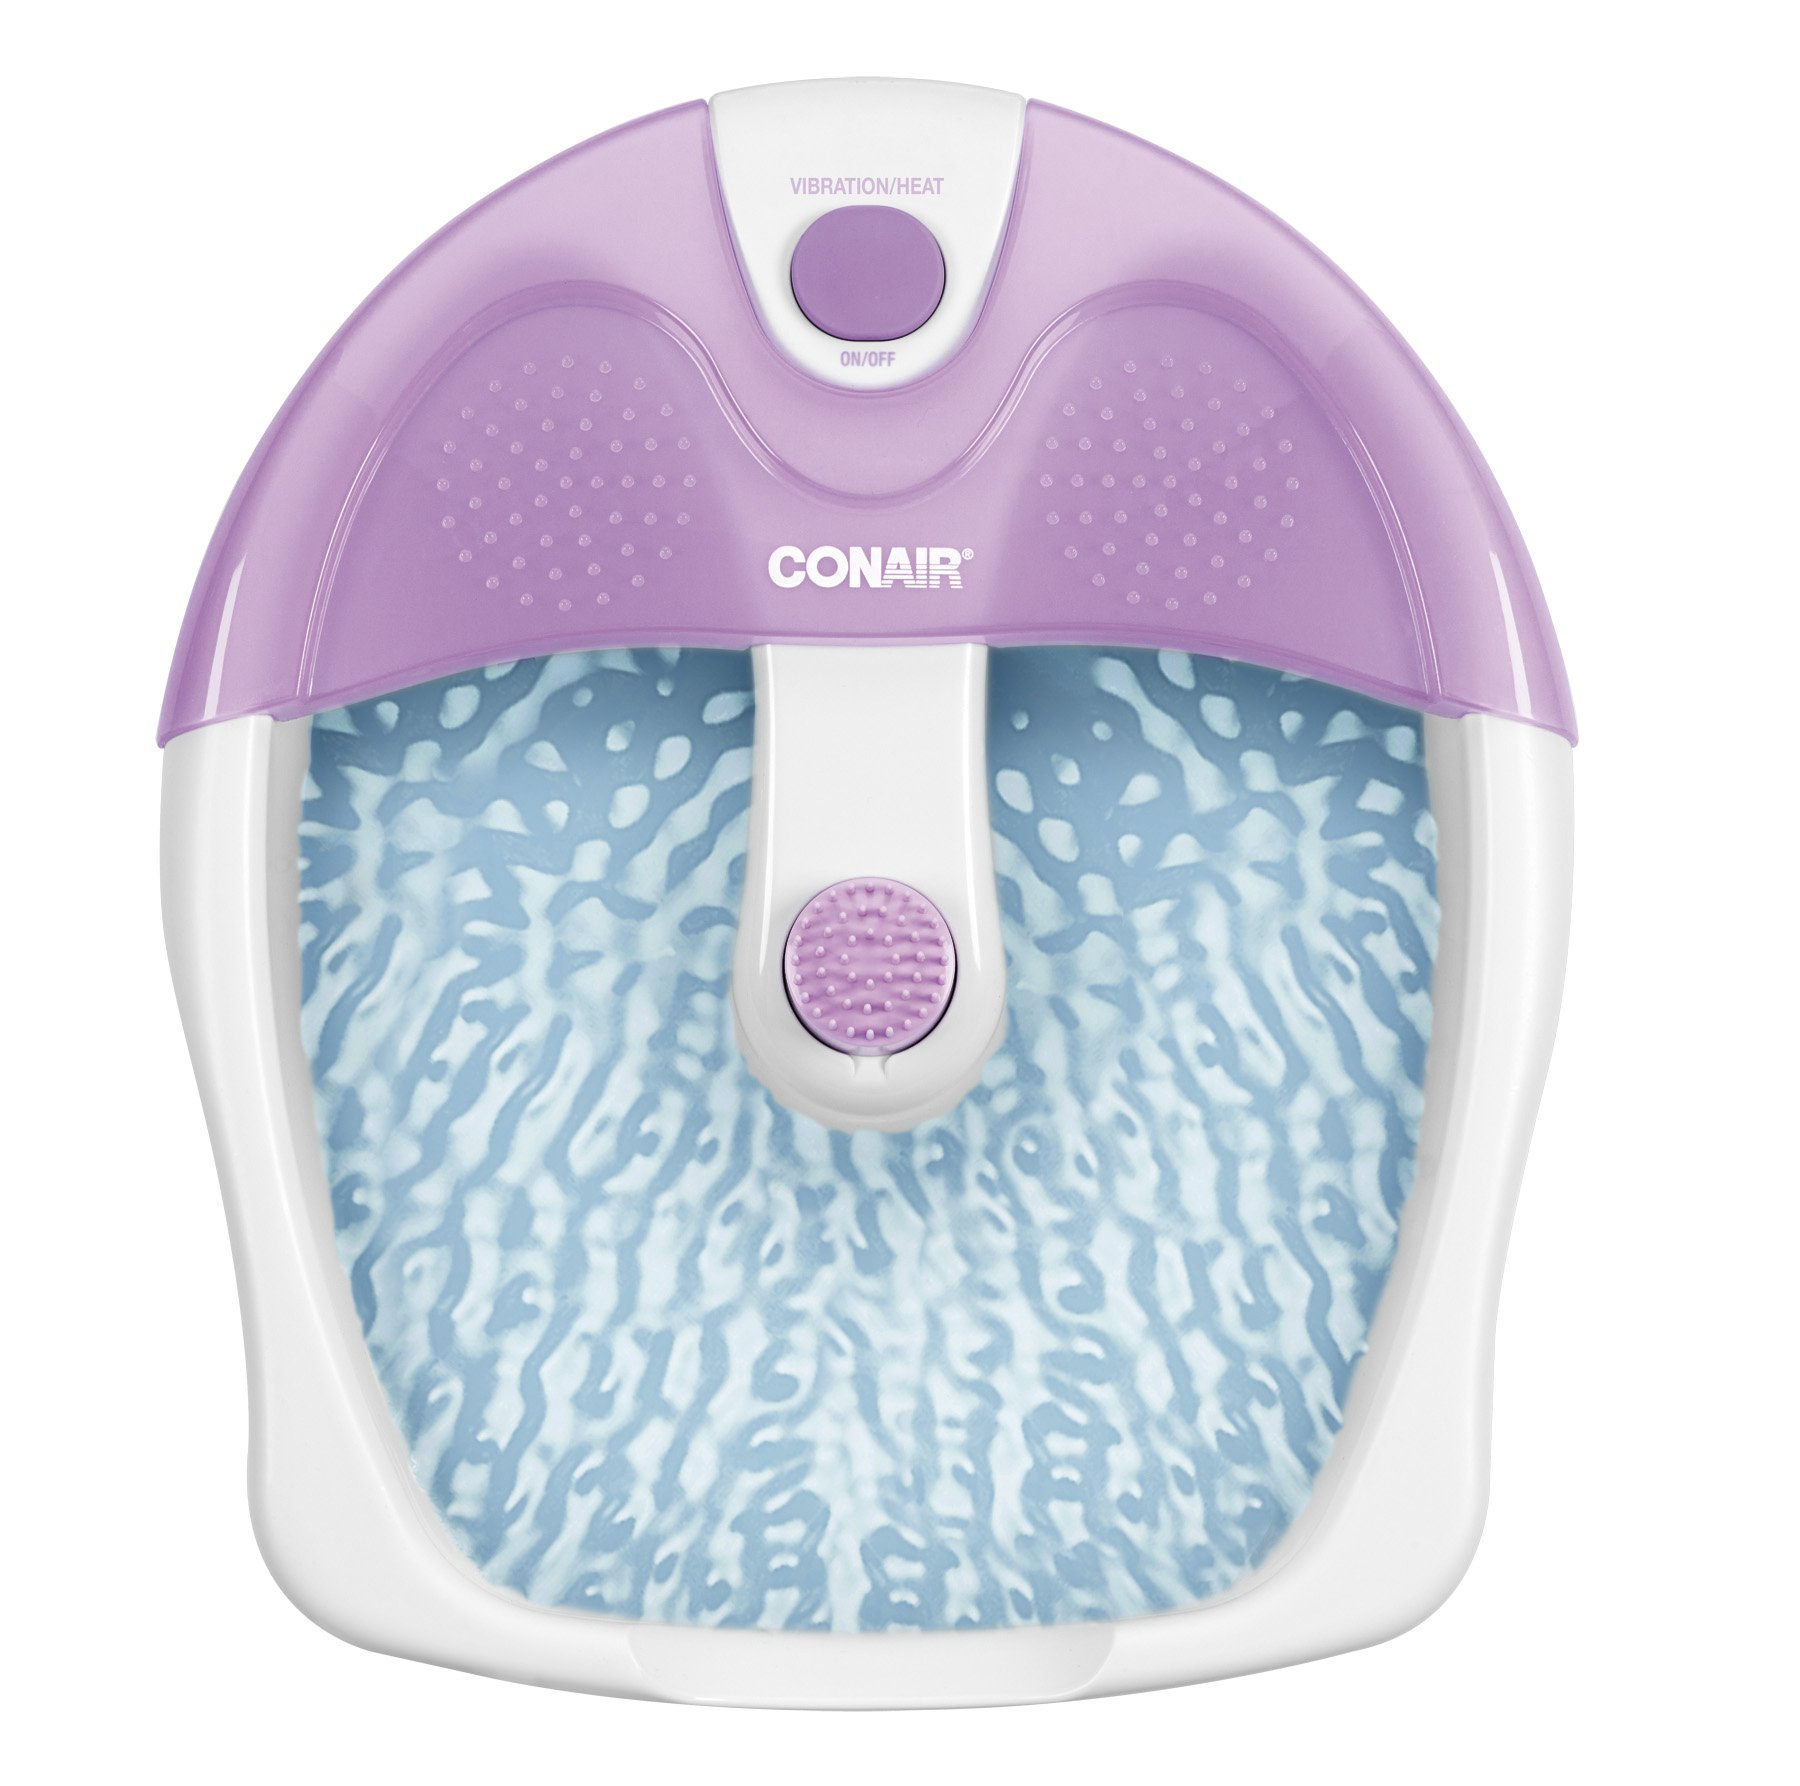 Conair Foot / Pedicure Spa with Vibration